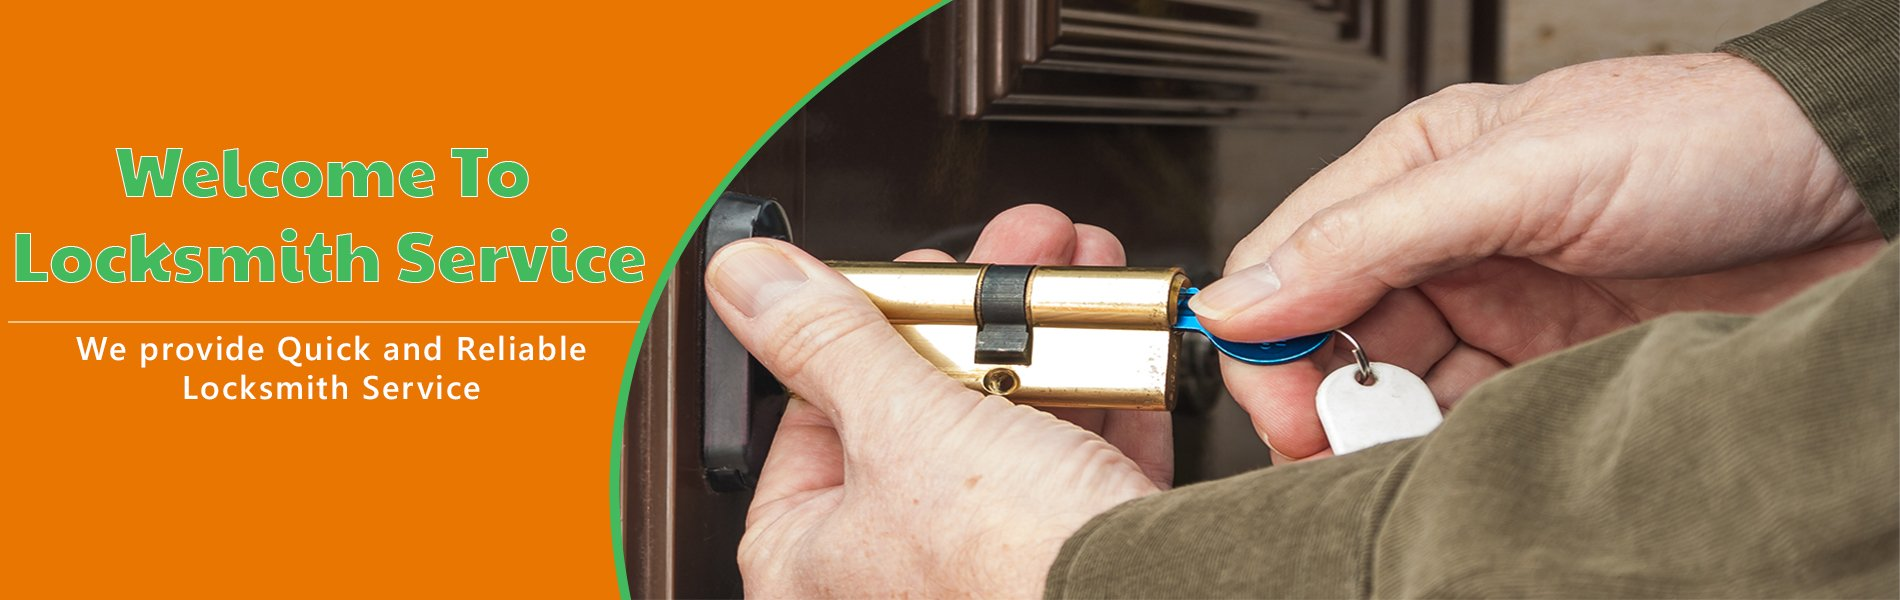 Washington DC Affordable Locksmith, Washington, DC 202-753-3644